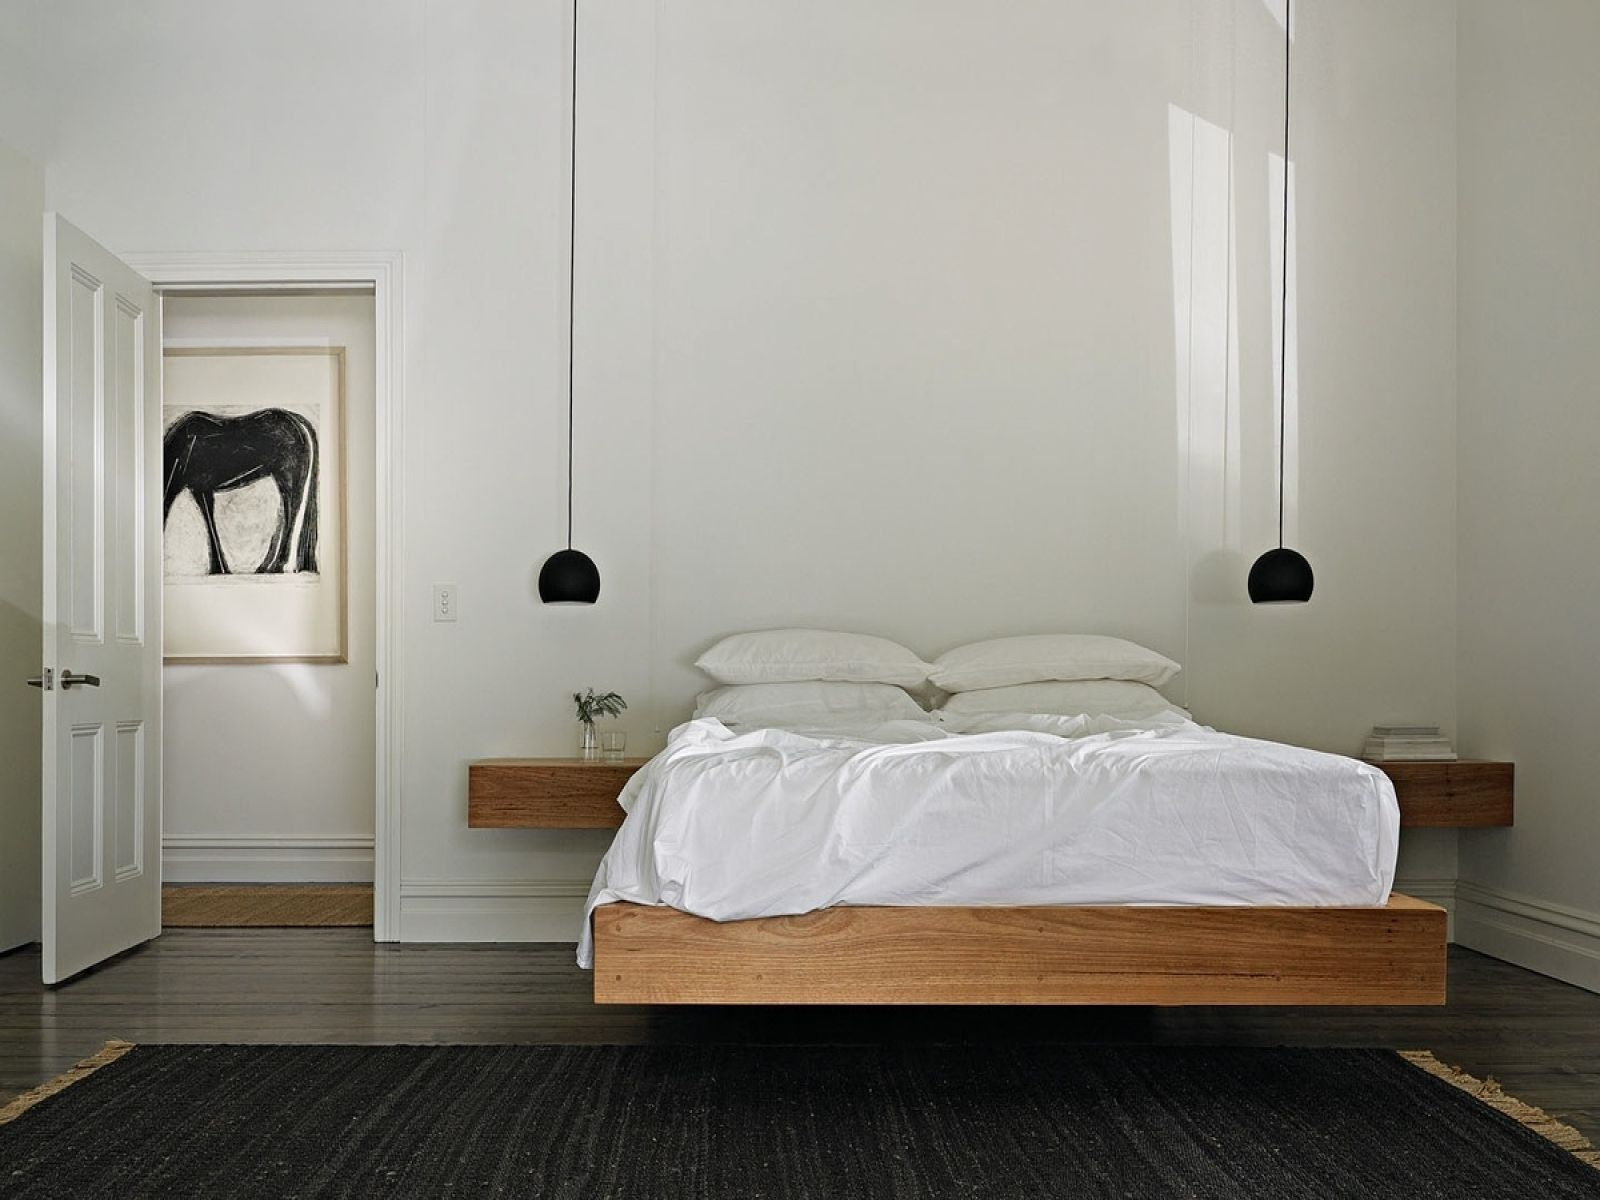 Minimalist Bedroom Ideas to Help You Get